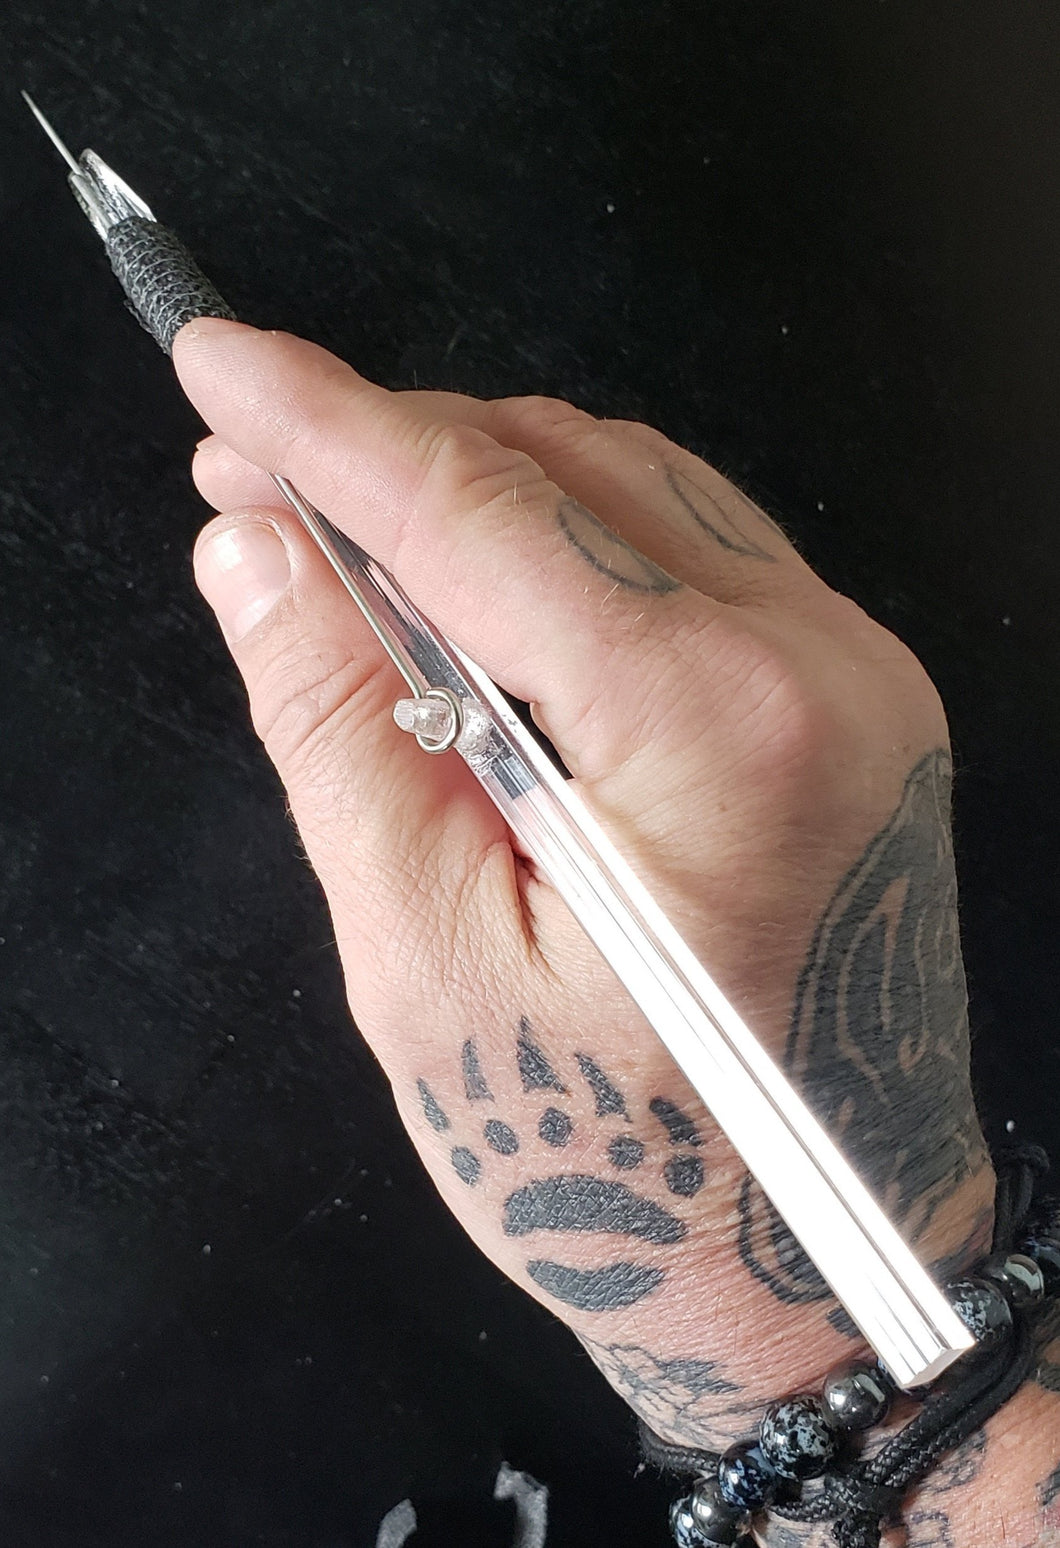 Hand Poke and Stick Tattoo kit,The Tattoo Stick, Stick too Poke Tattoo Stick, Free Instructions